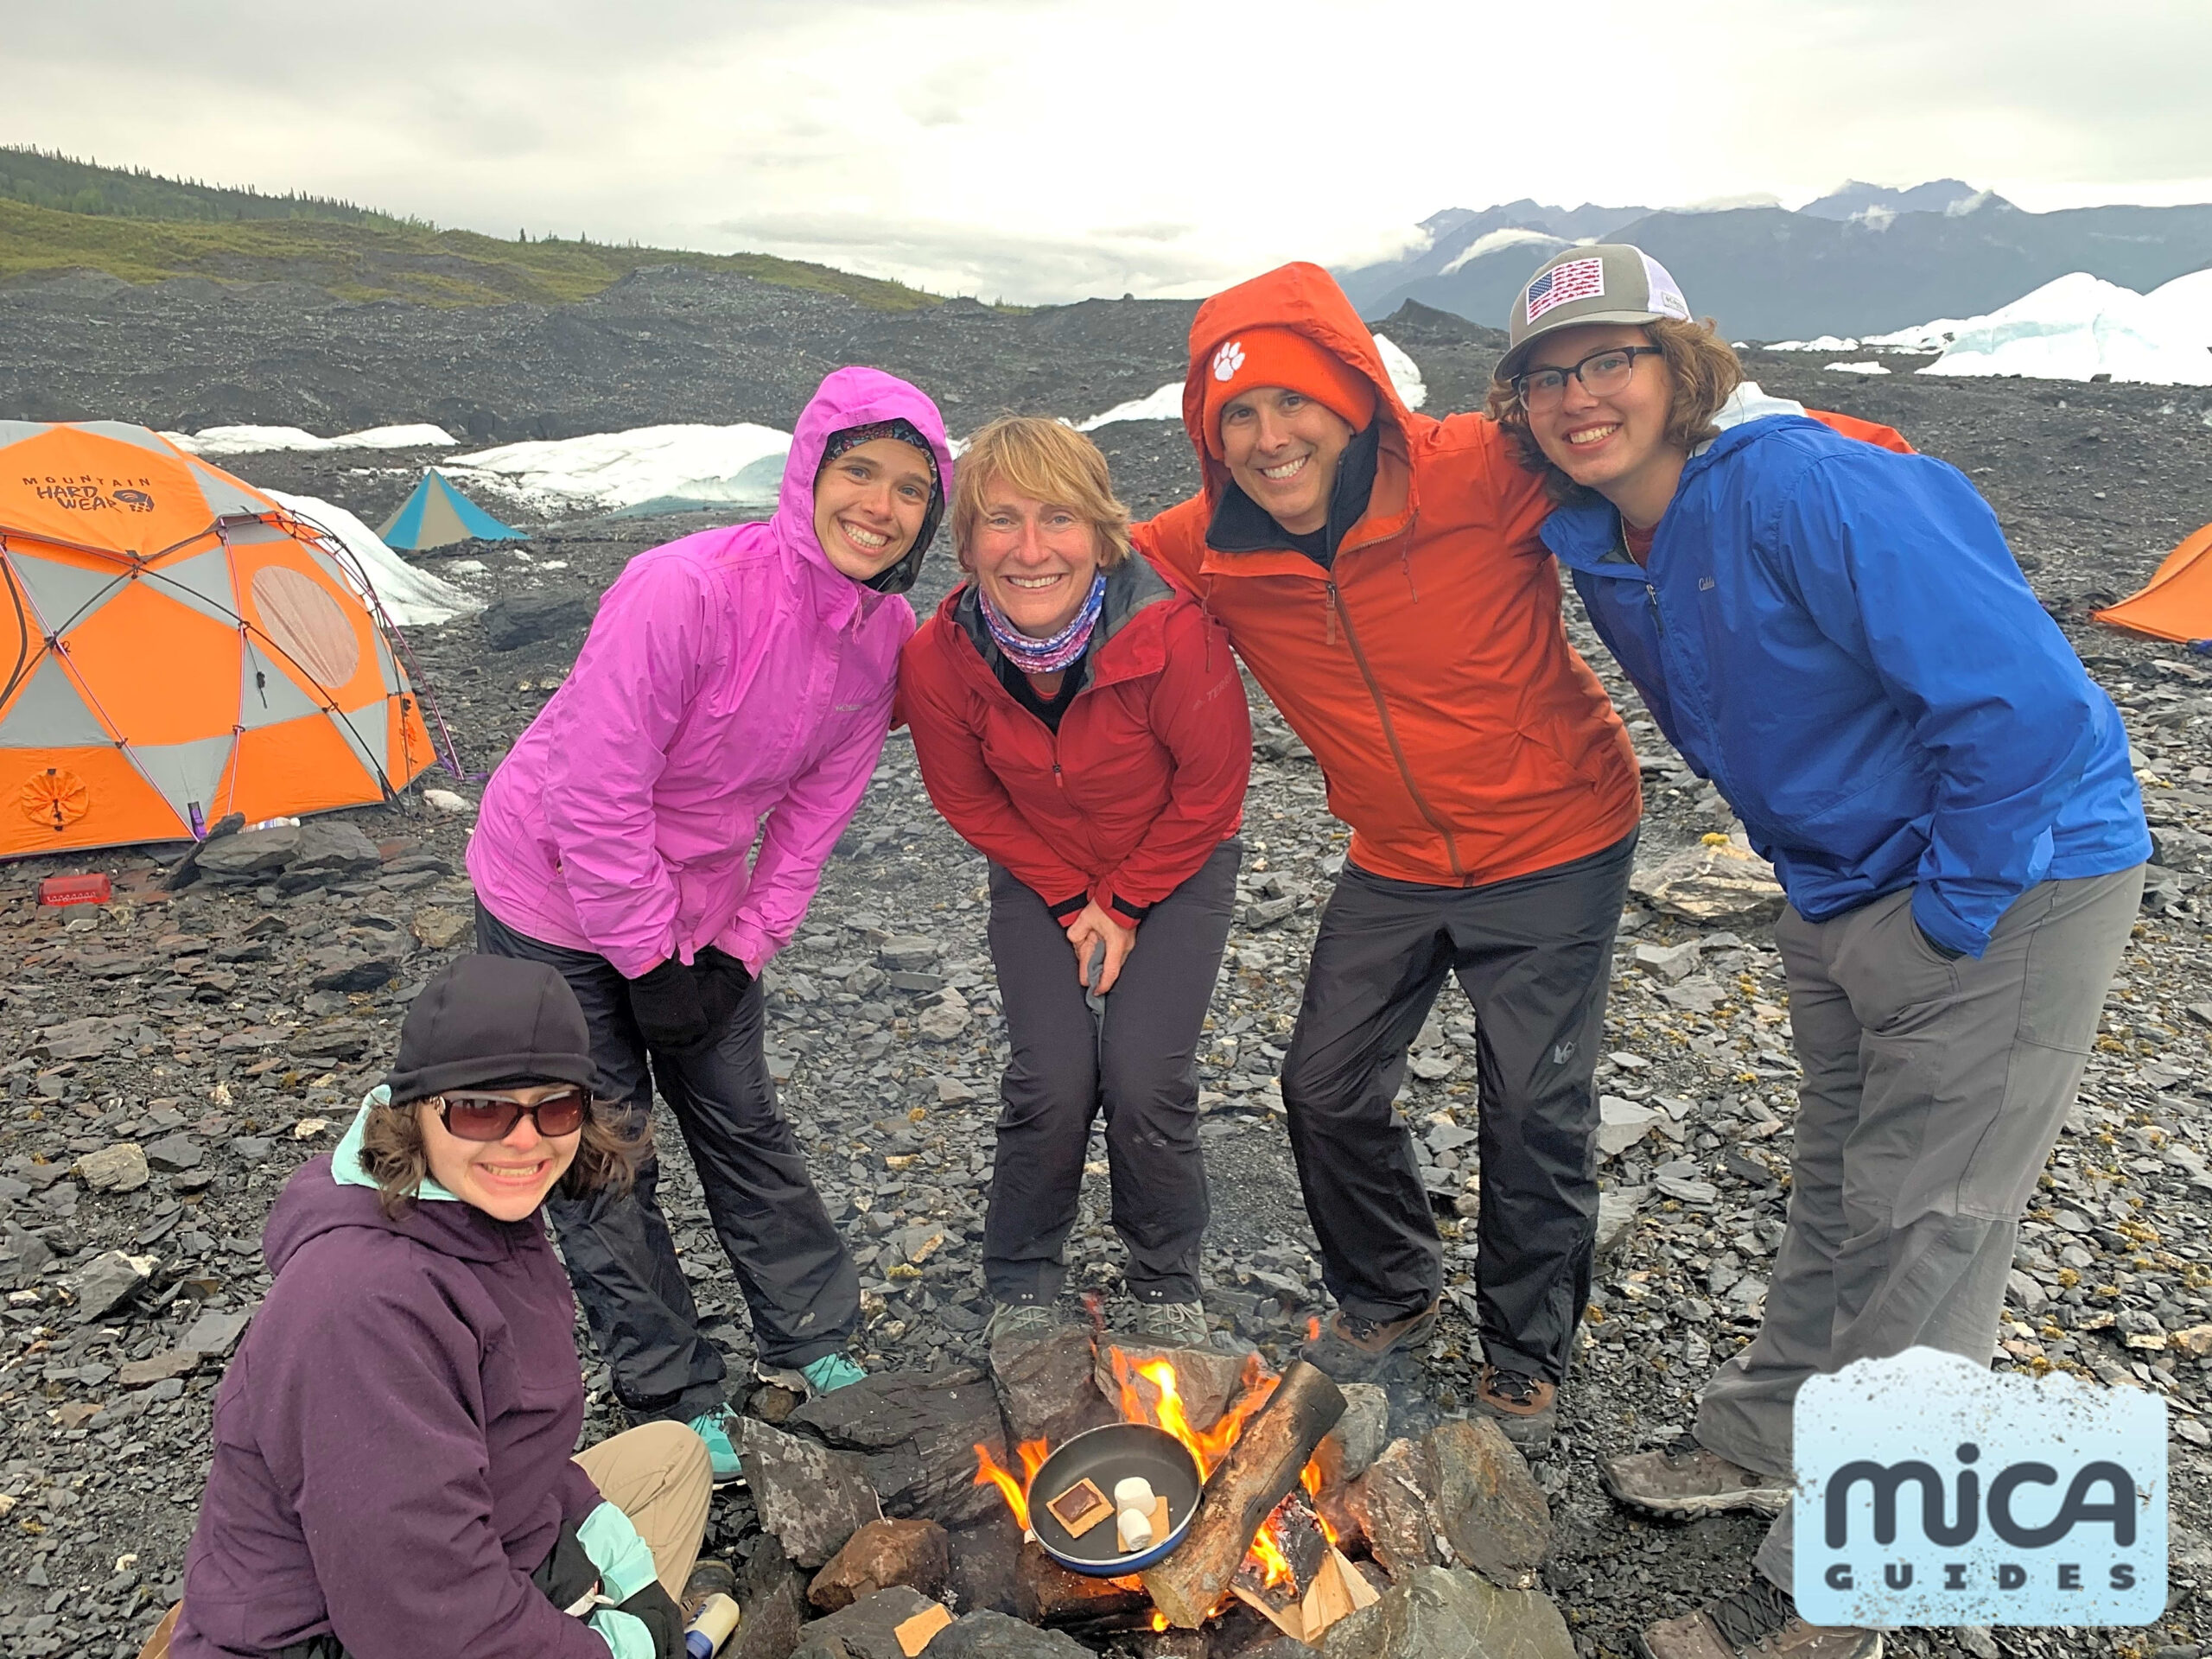 MICA Guides camping